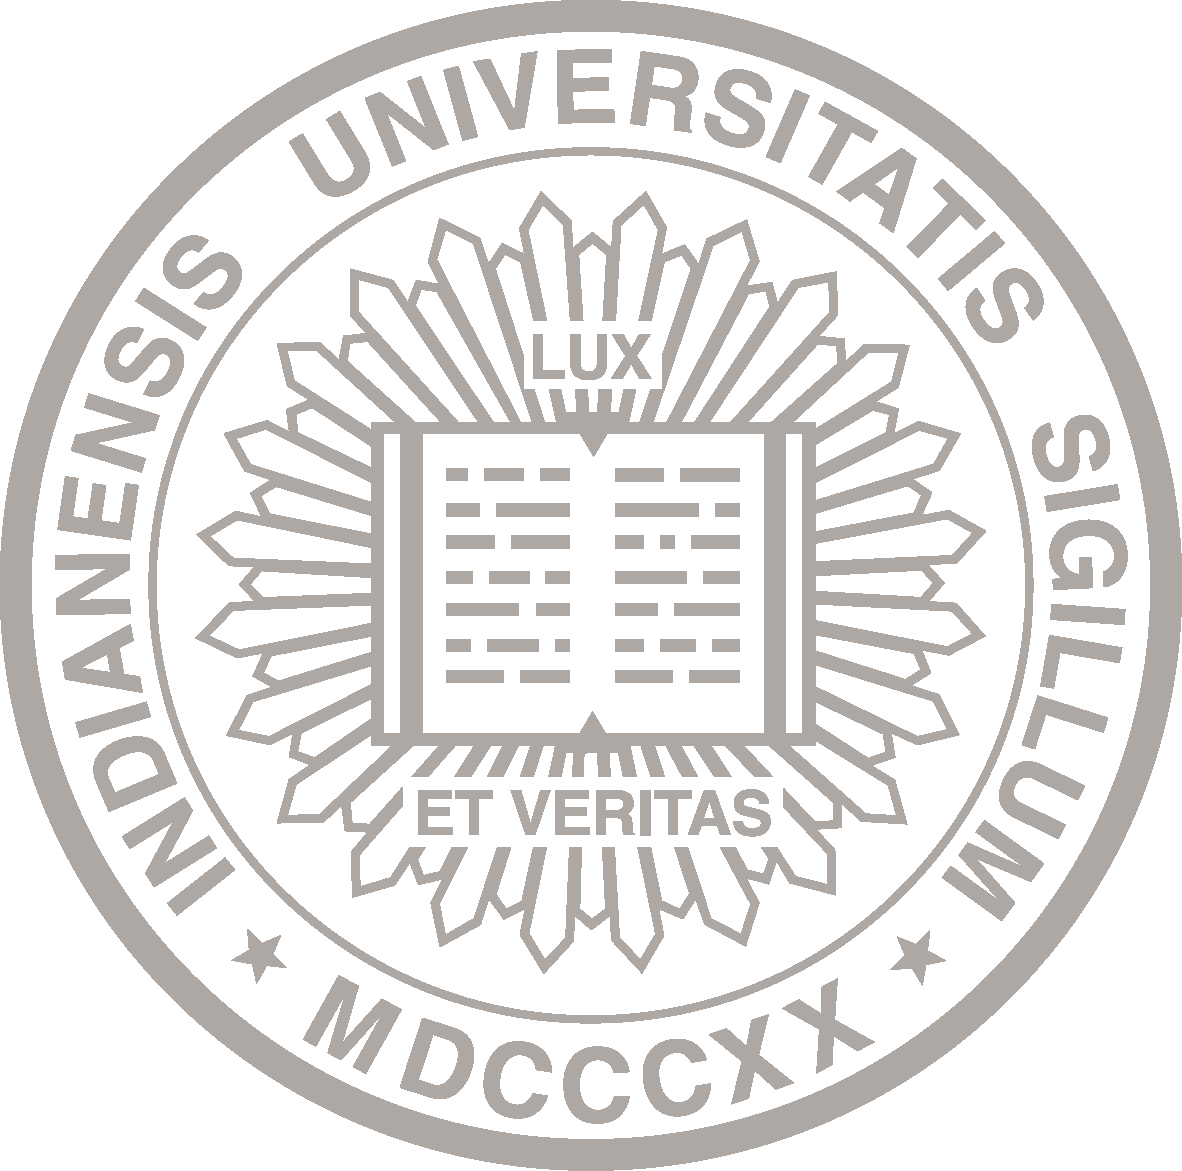 The IU Seal: Indianensis Universitatis Sigillum MDCCCXX